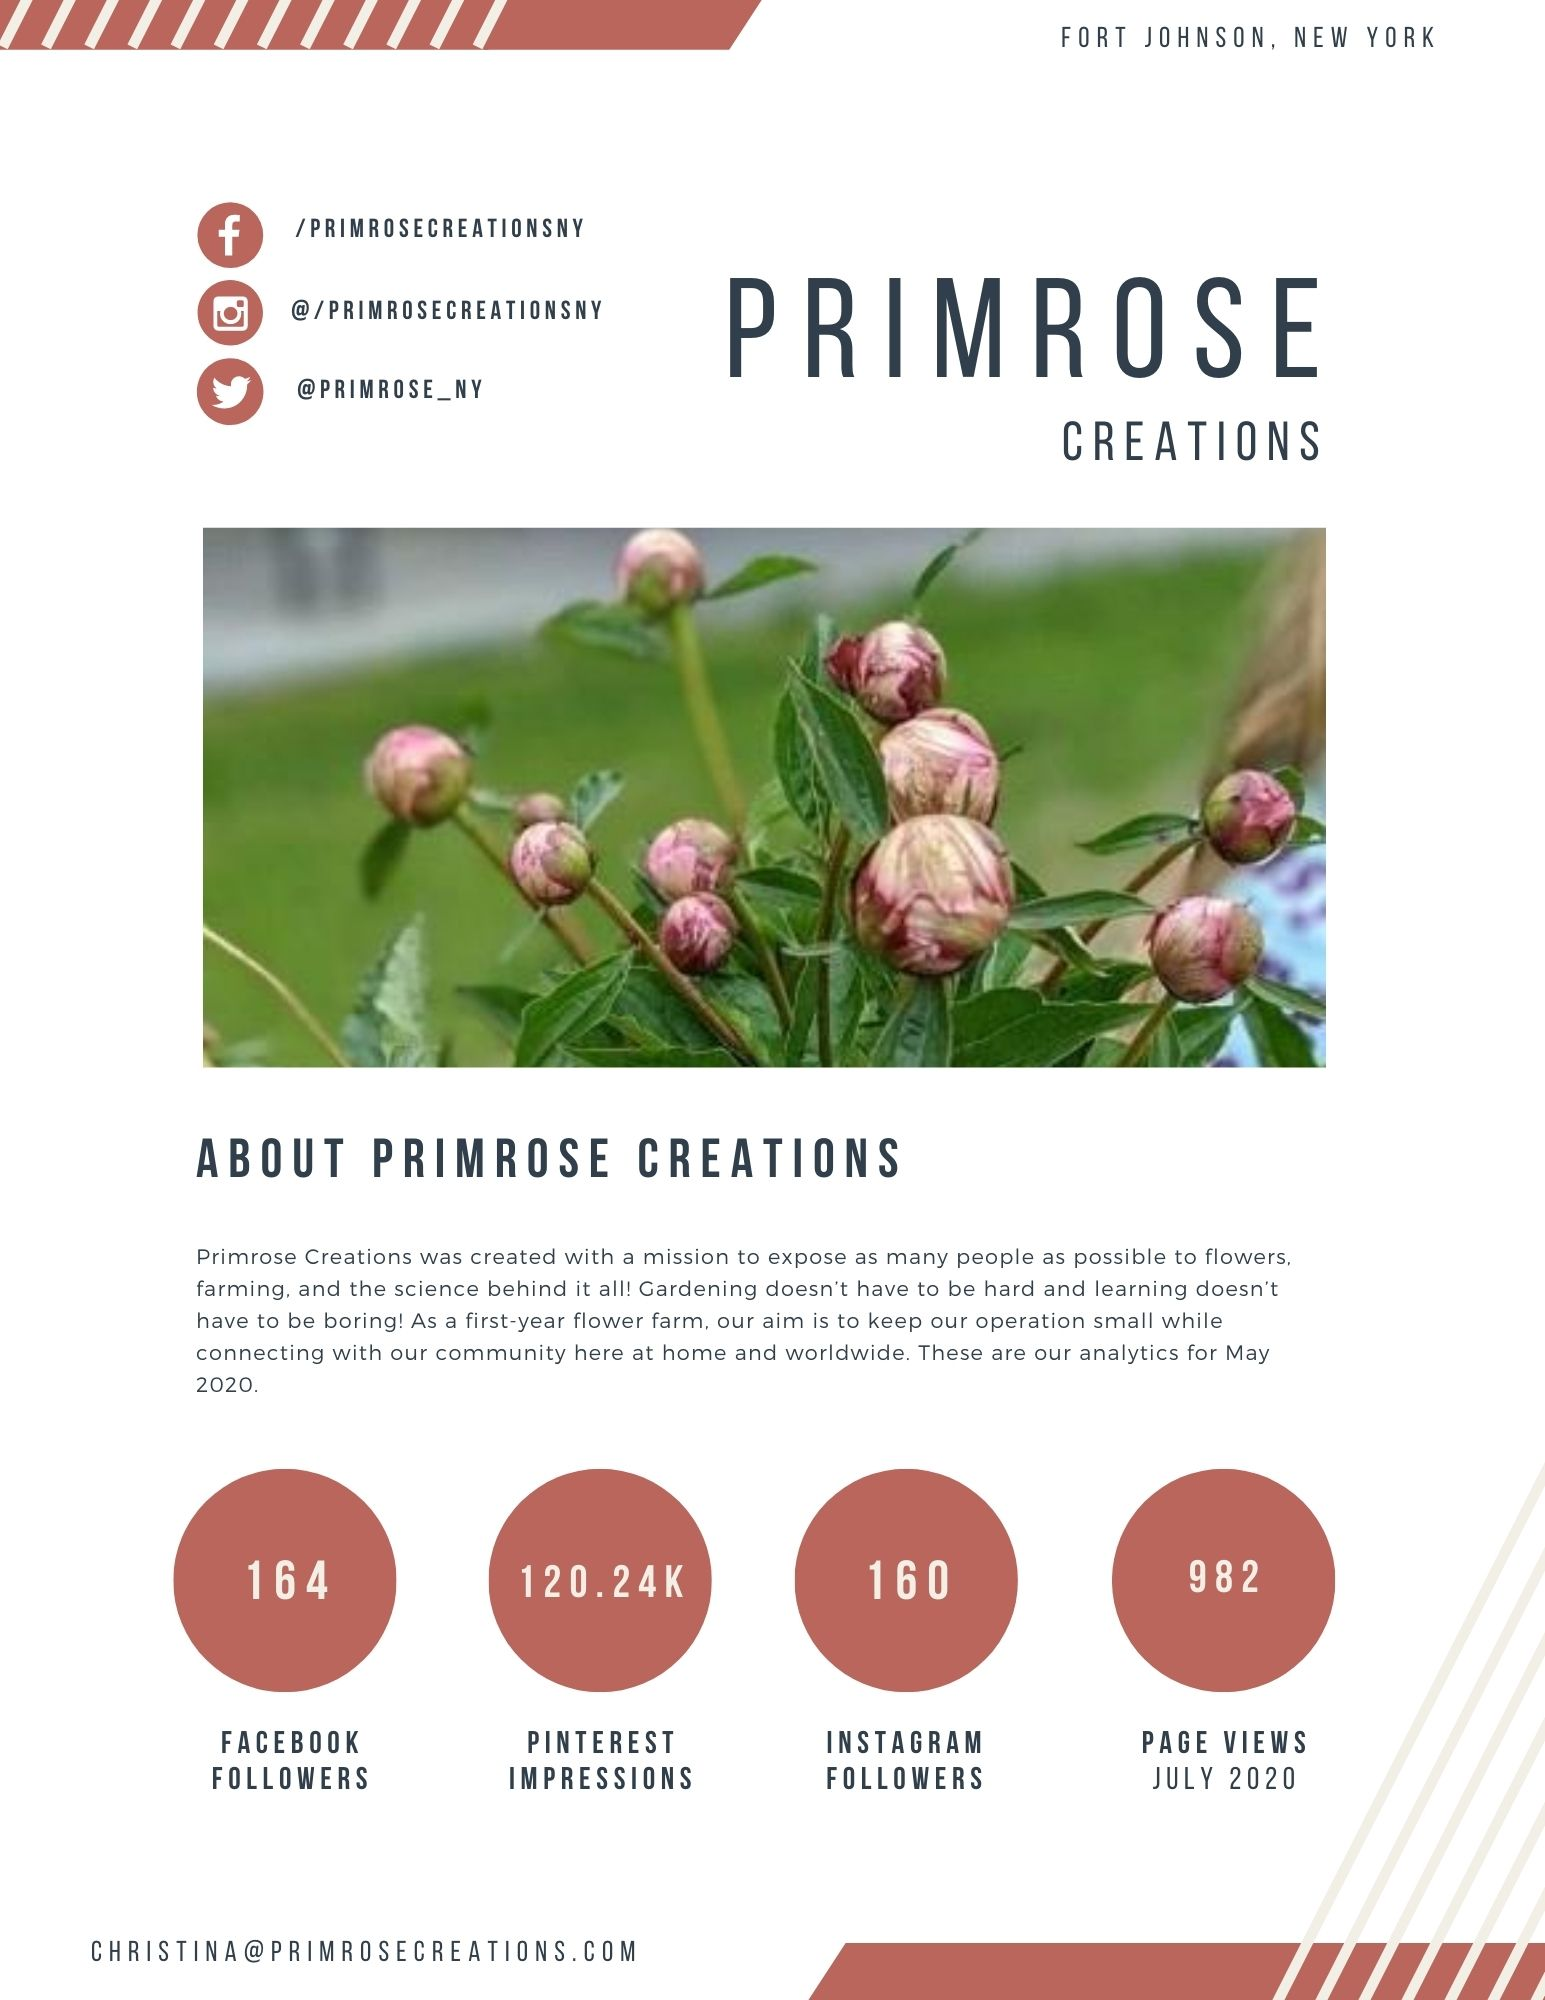 Media Kit for Christina Malinoski of Primrose Creations which contains social media handles and monthly updated engagement data.